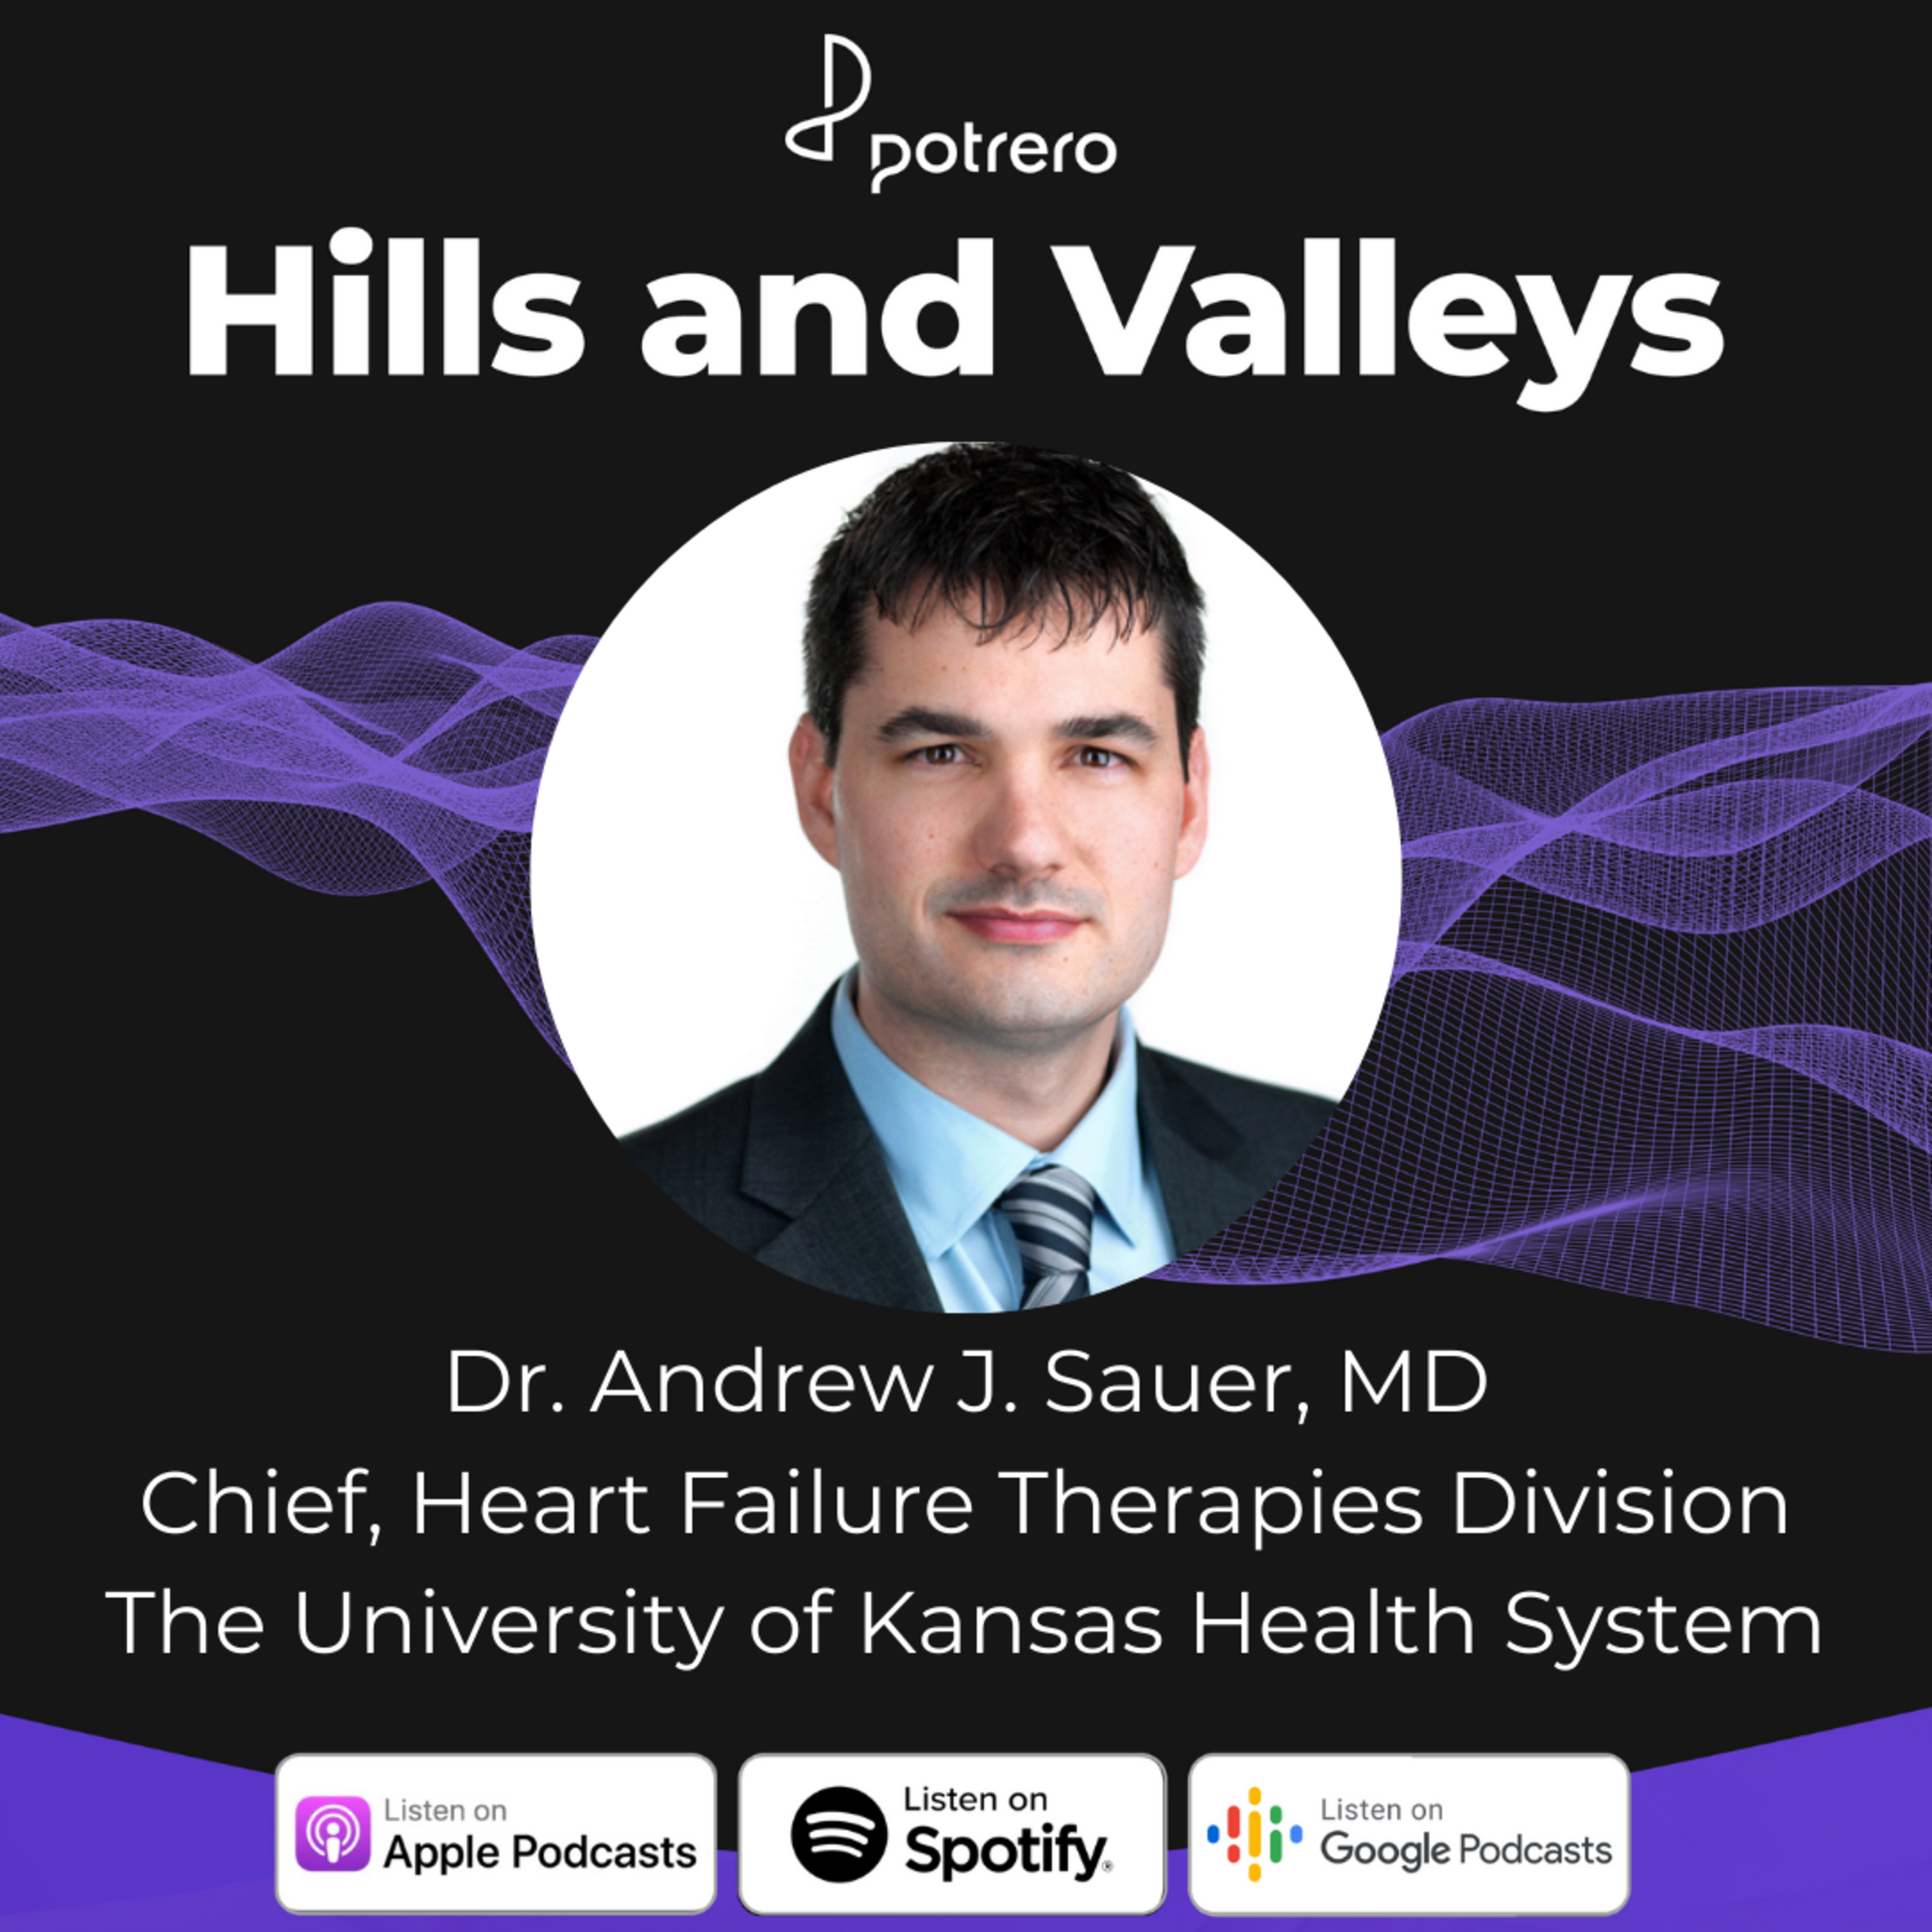 Ep21: Dr. Andrew J. Sauer, Chief of Heart Failure Therapies Division at The University of Kansas Health System